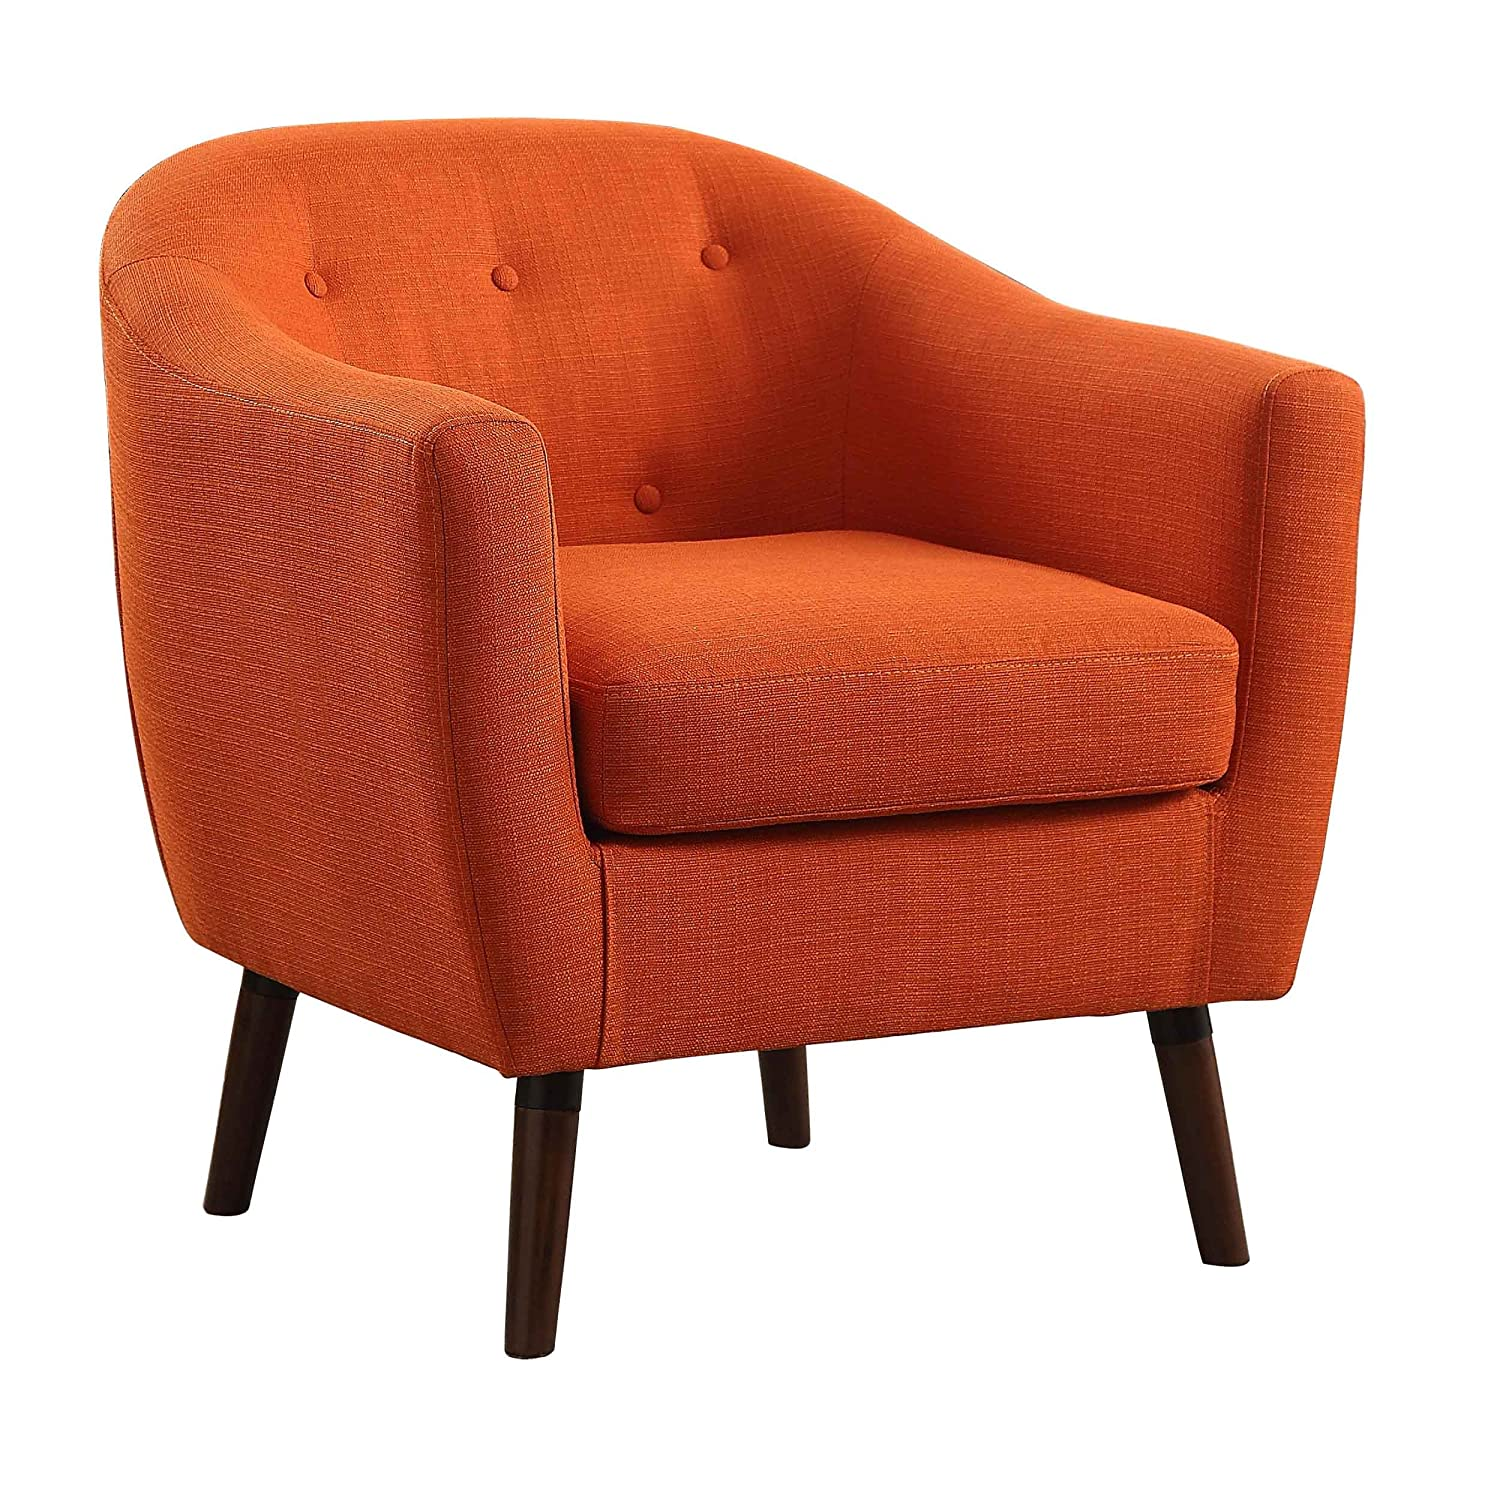 Homelegance Lucille Fabric Upholstered Pub Barrel Chair, Orange